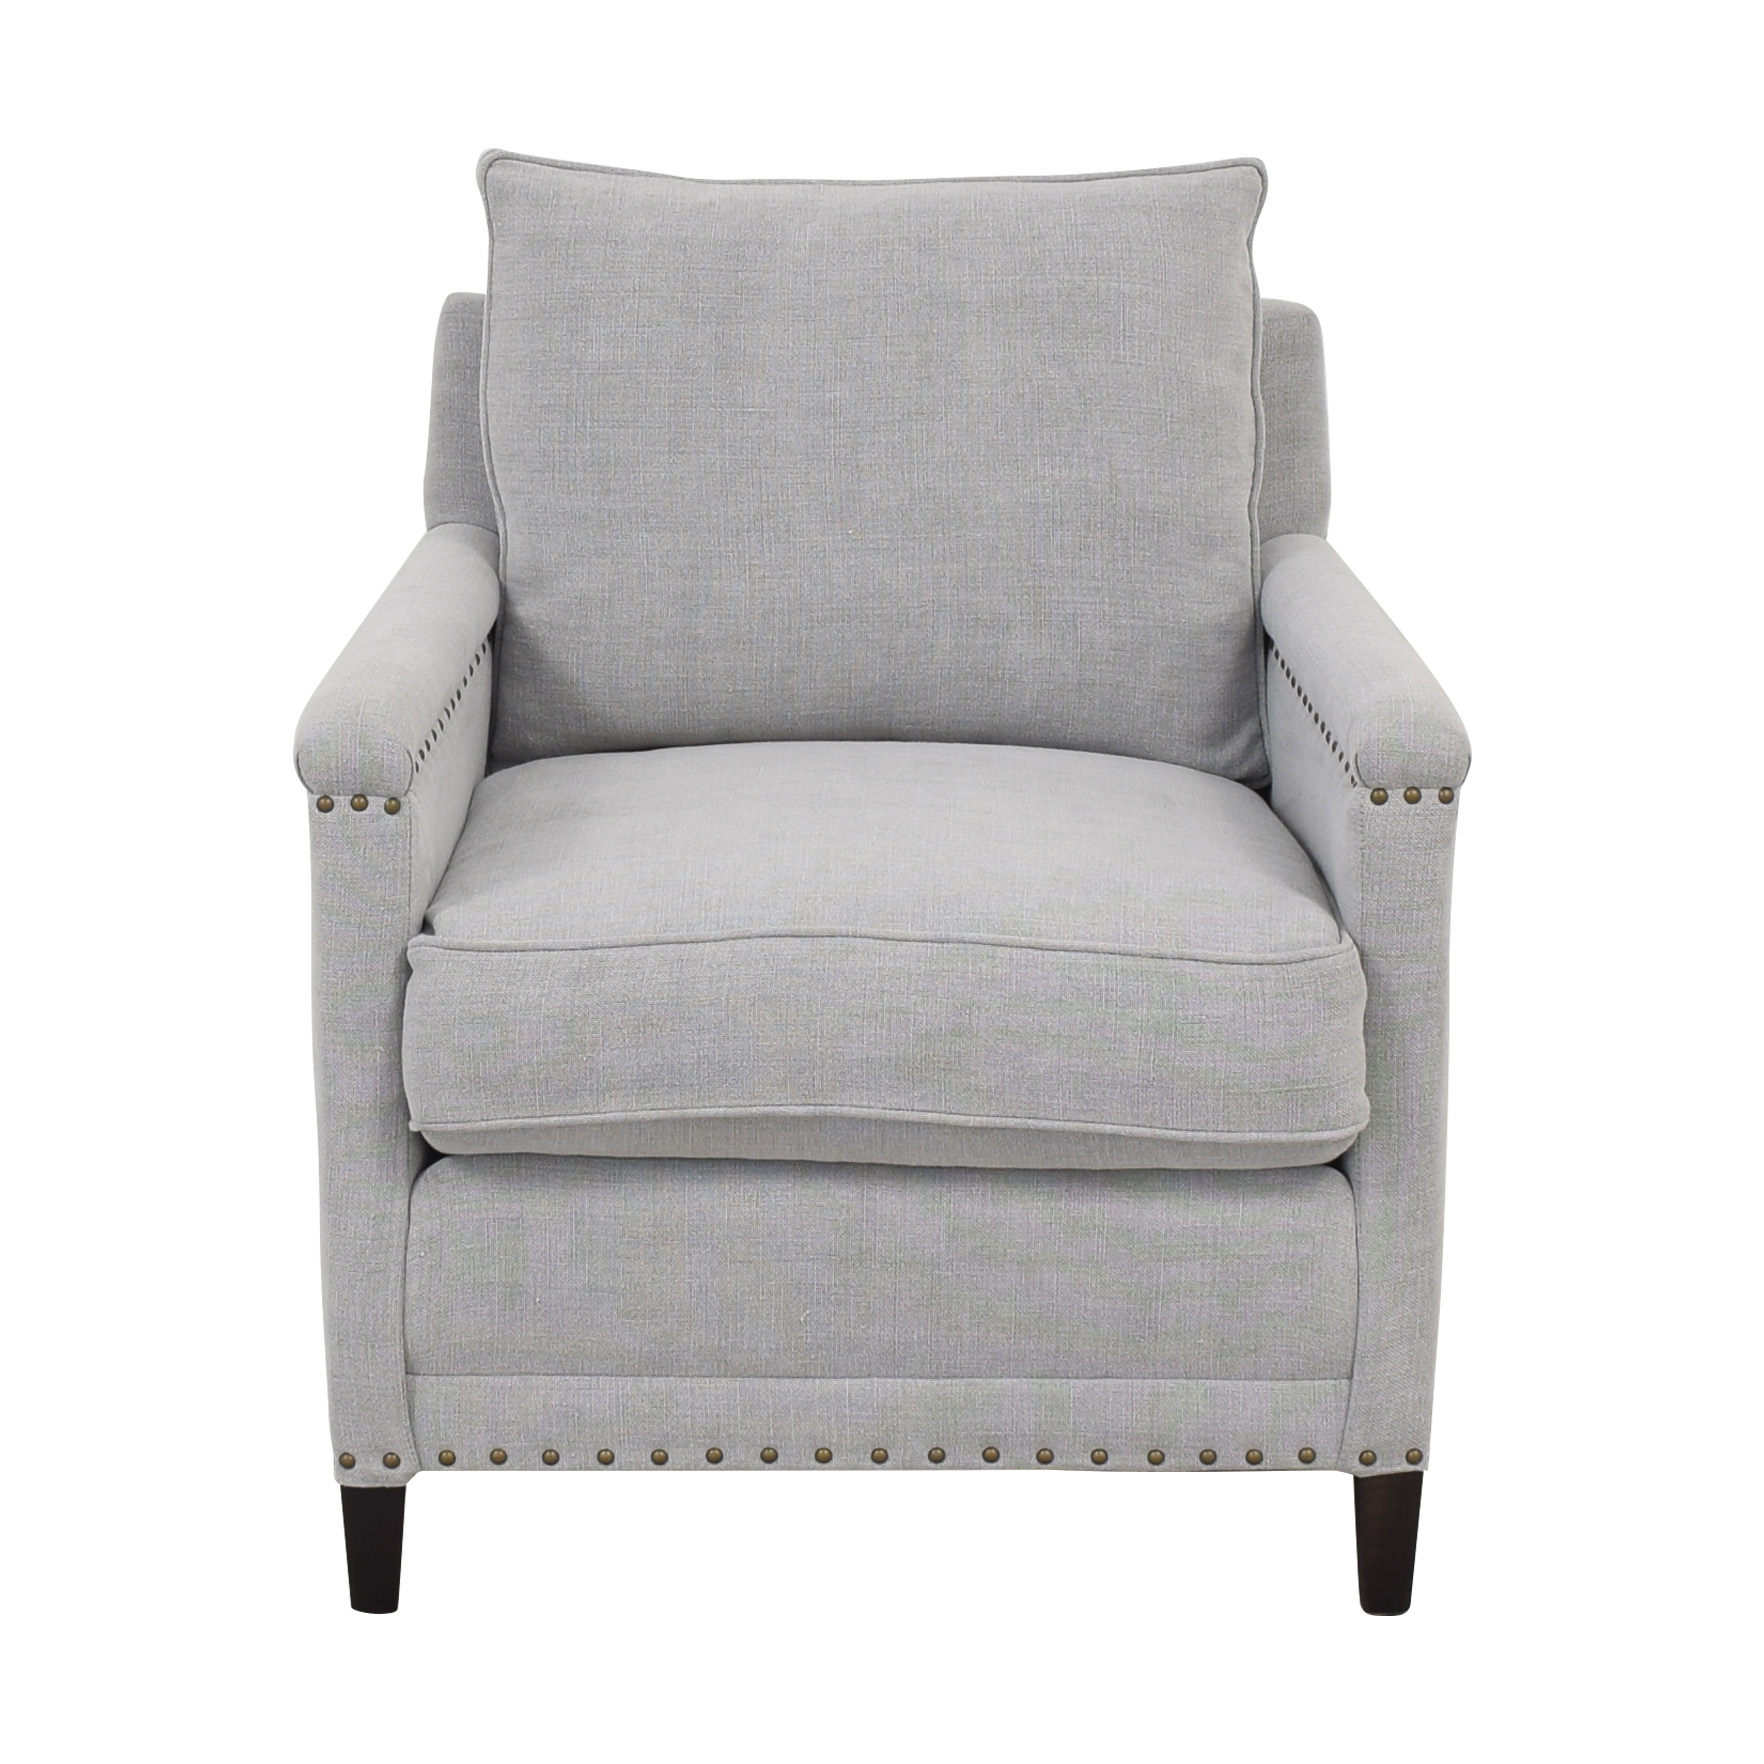 buy Williams Sonoma Addison Chair with Nailheads Williams Sonoma